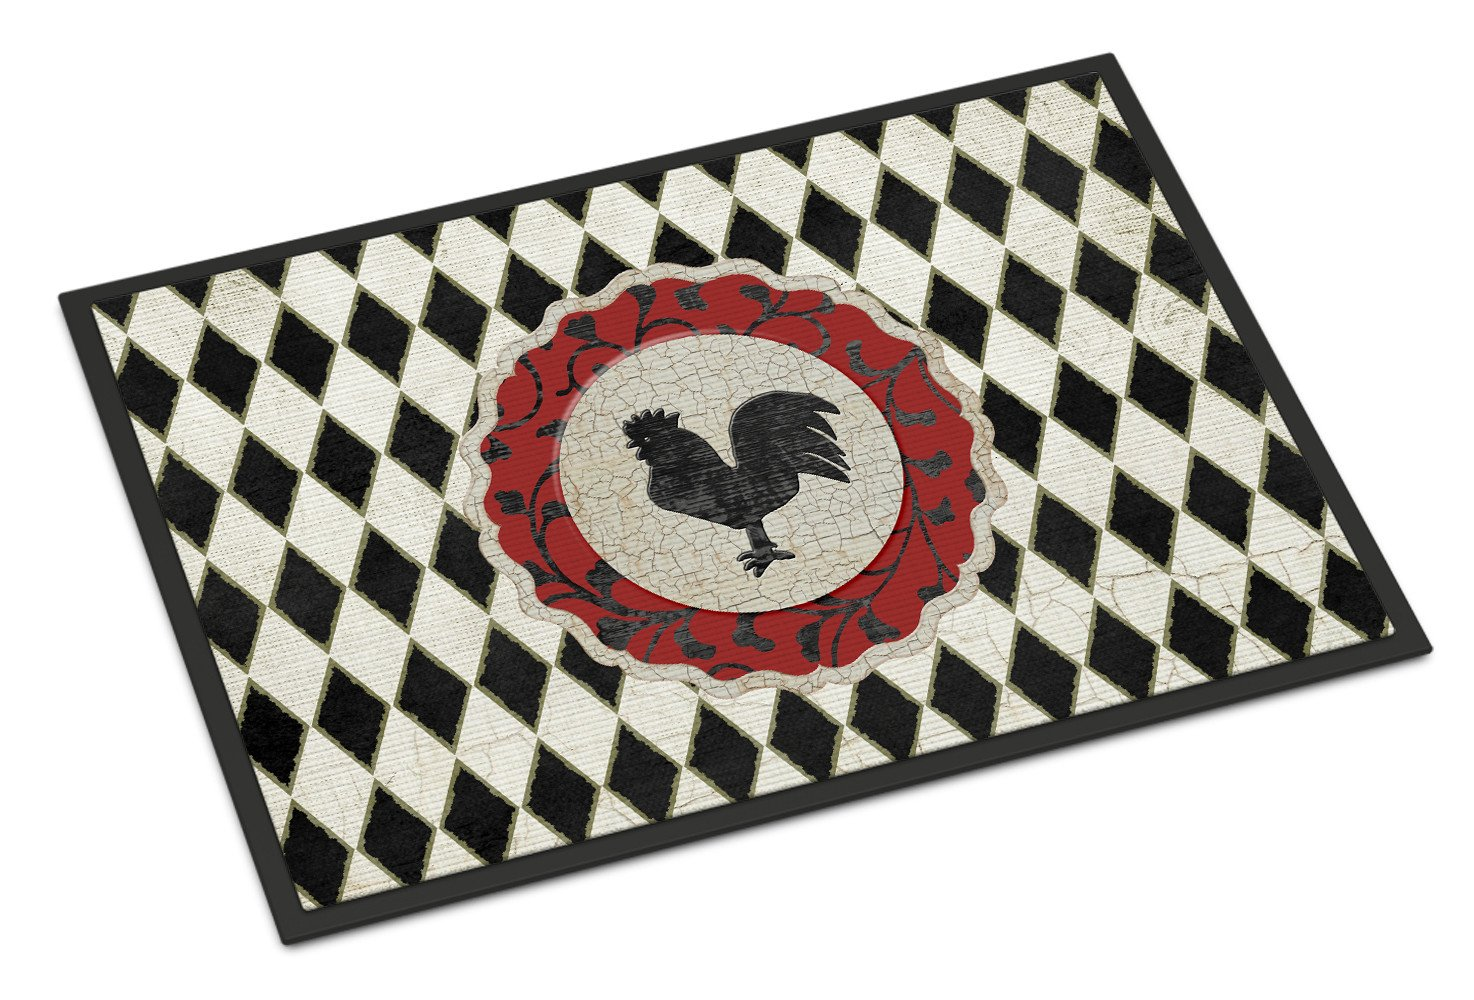 Rooster Harlequin Black and white Indoor or Outdoor Mat 18x27 SB3086MAT by Caroline's Treasures